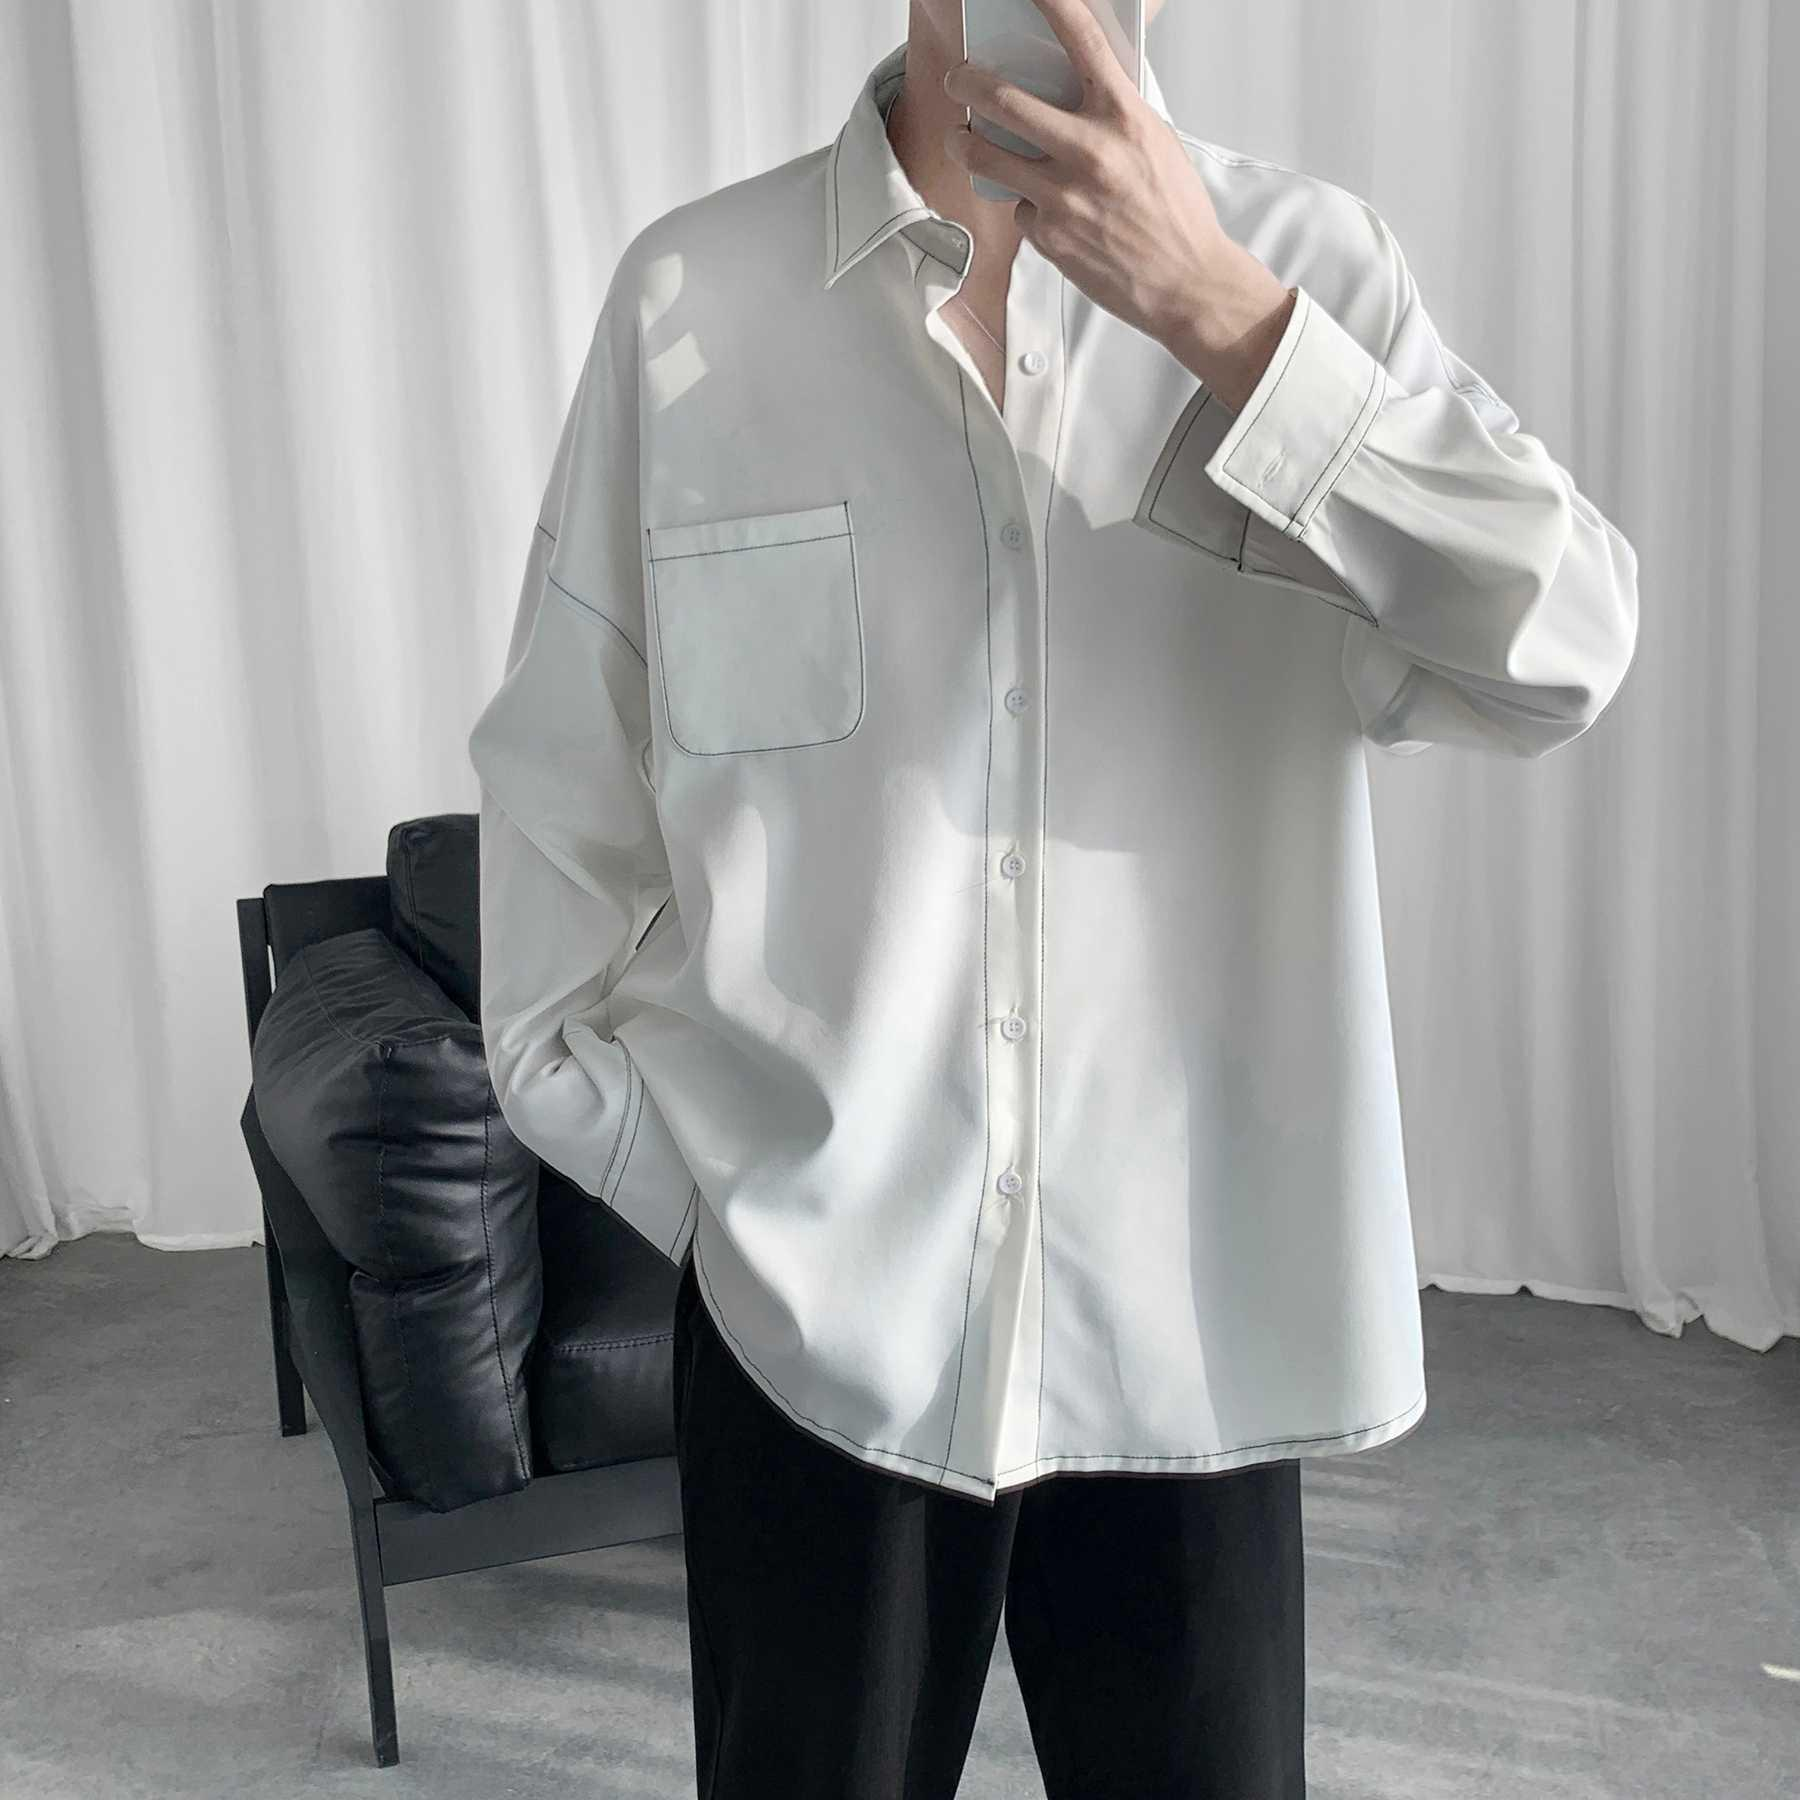 white long sleeve shirt mens outfit off 78% - www.usushimd.com